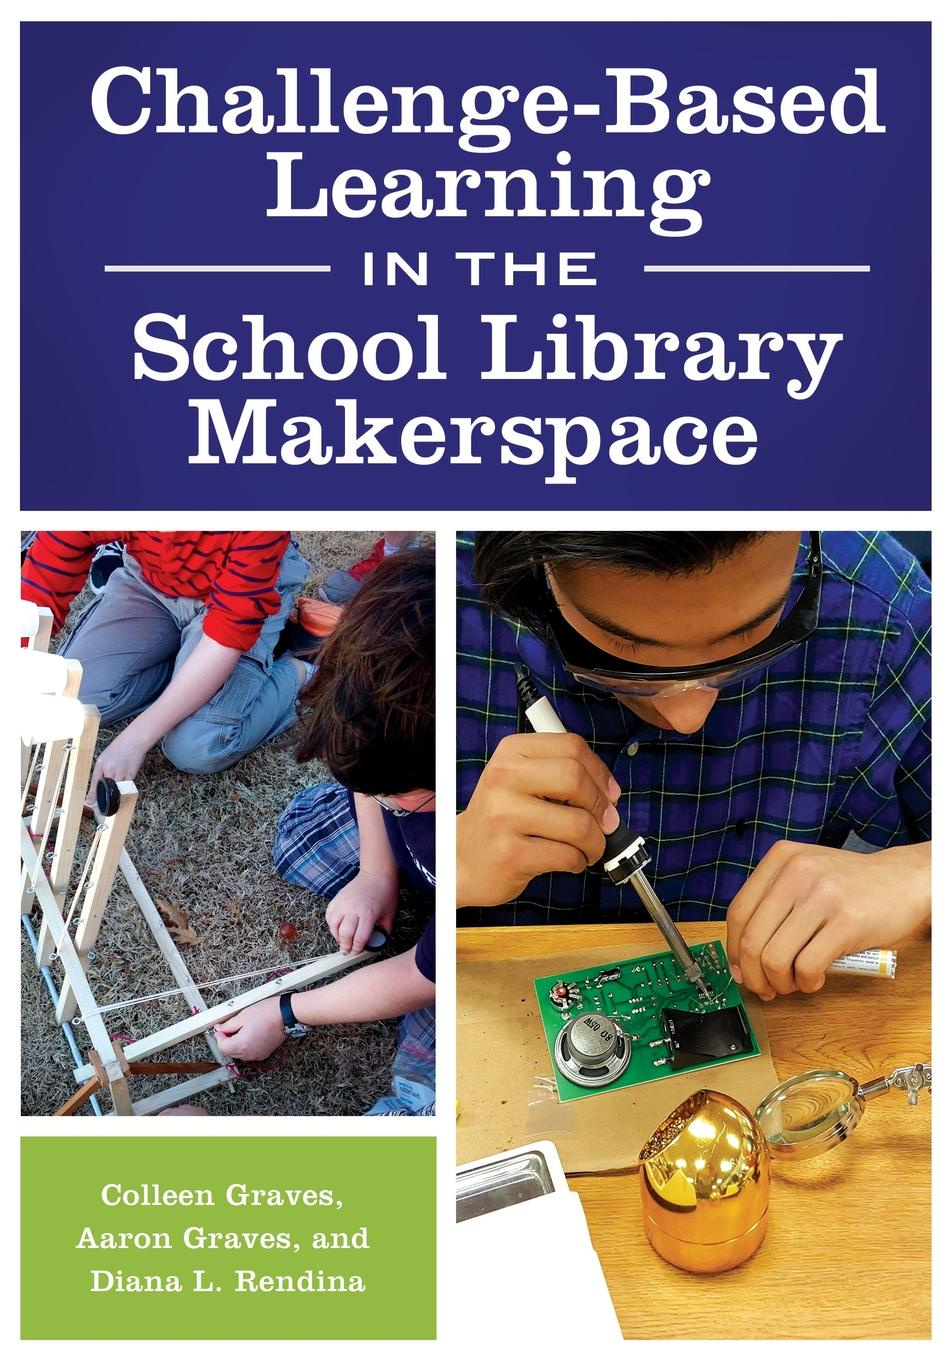 Colleen Graves, Aaron Graves, Diana Rendina Challenge-Based Learning in the School Library Makerspace kathleen susman m discovery based learning in the life sciences